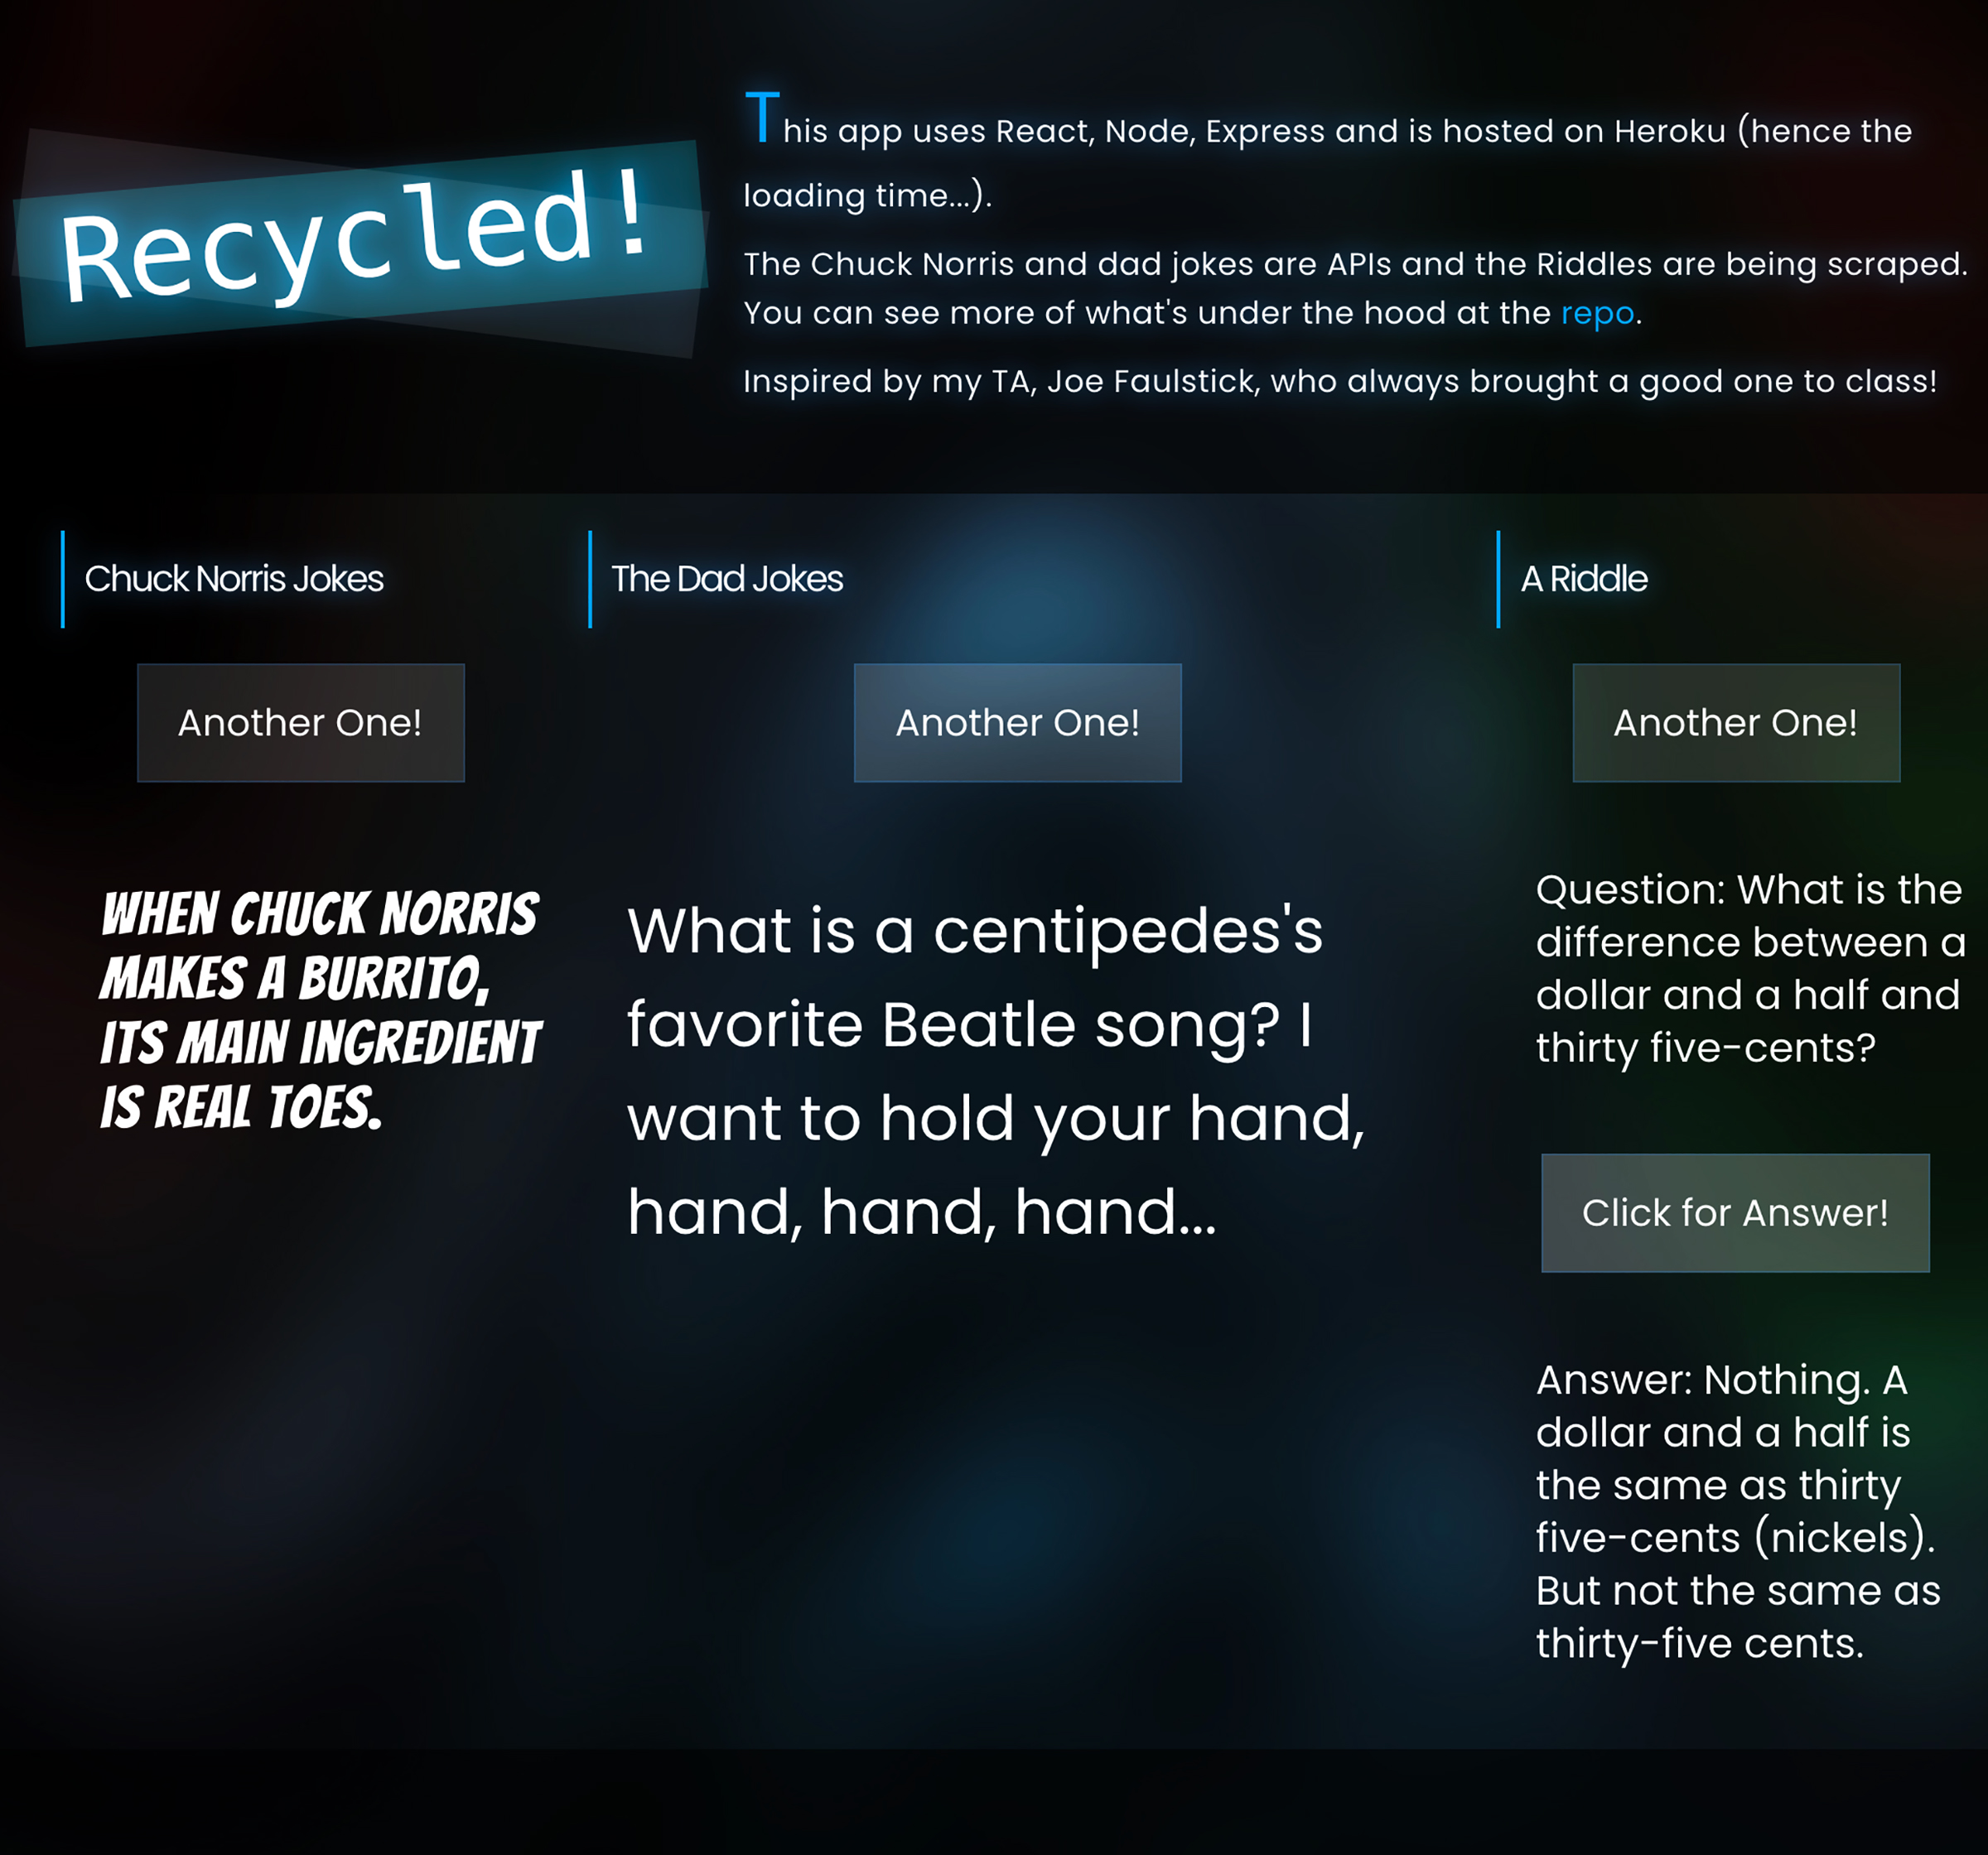 Image of Recycled app with dark background and 3 sets of jokes